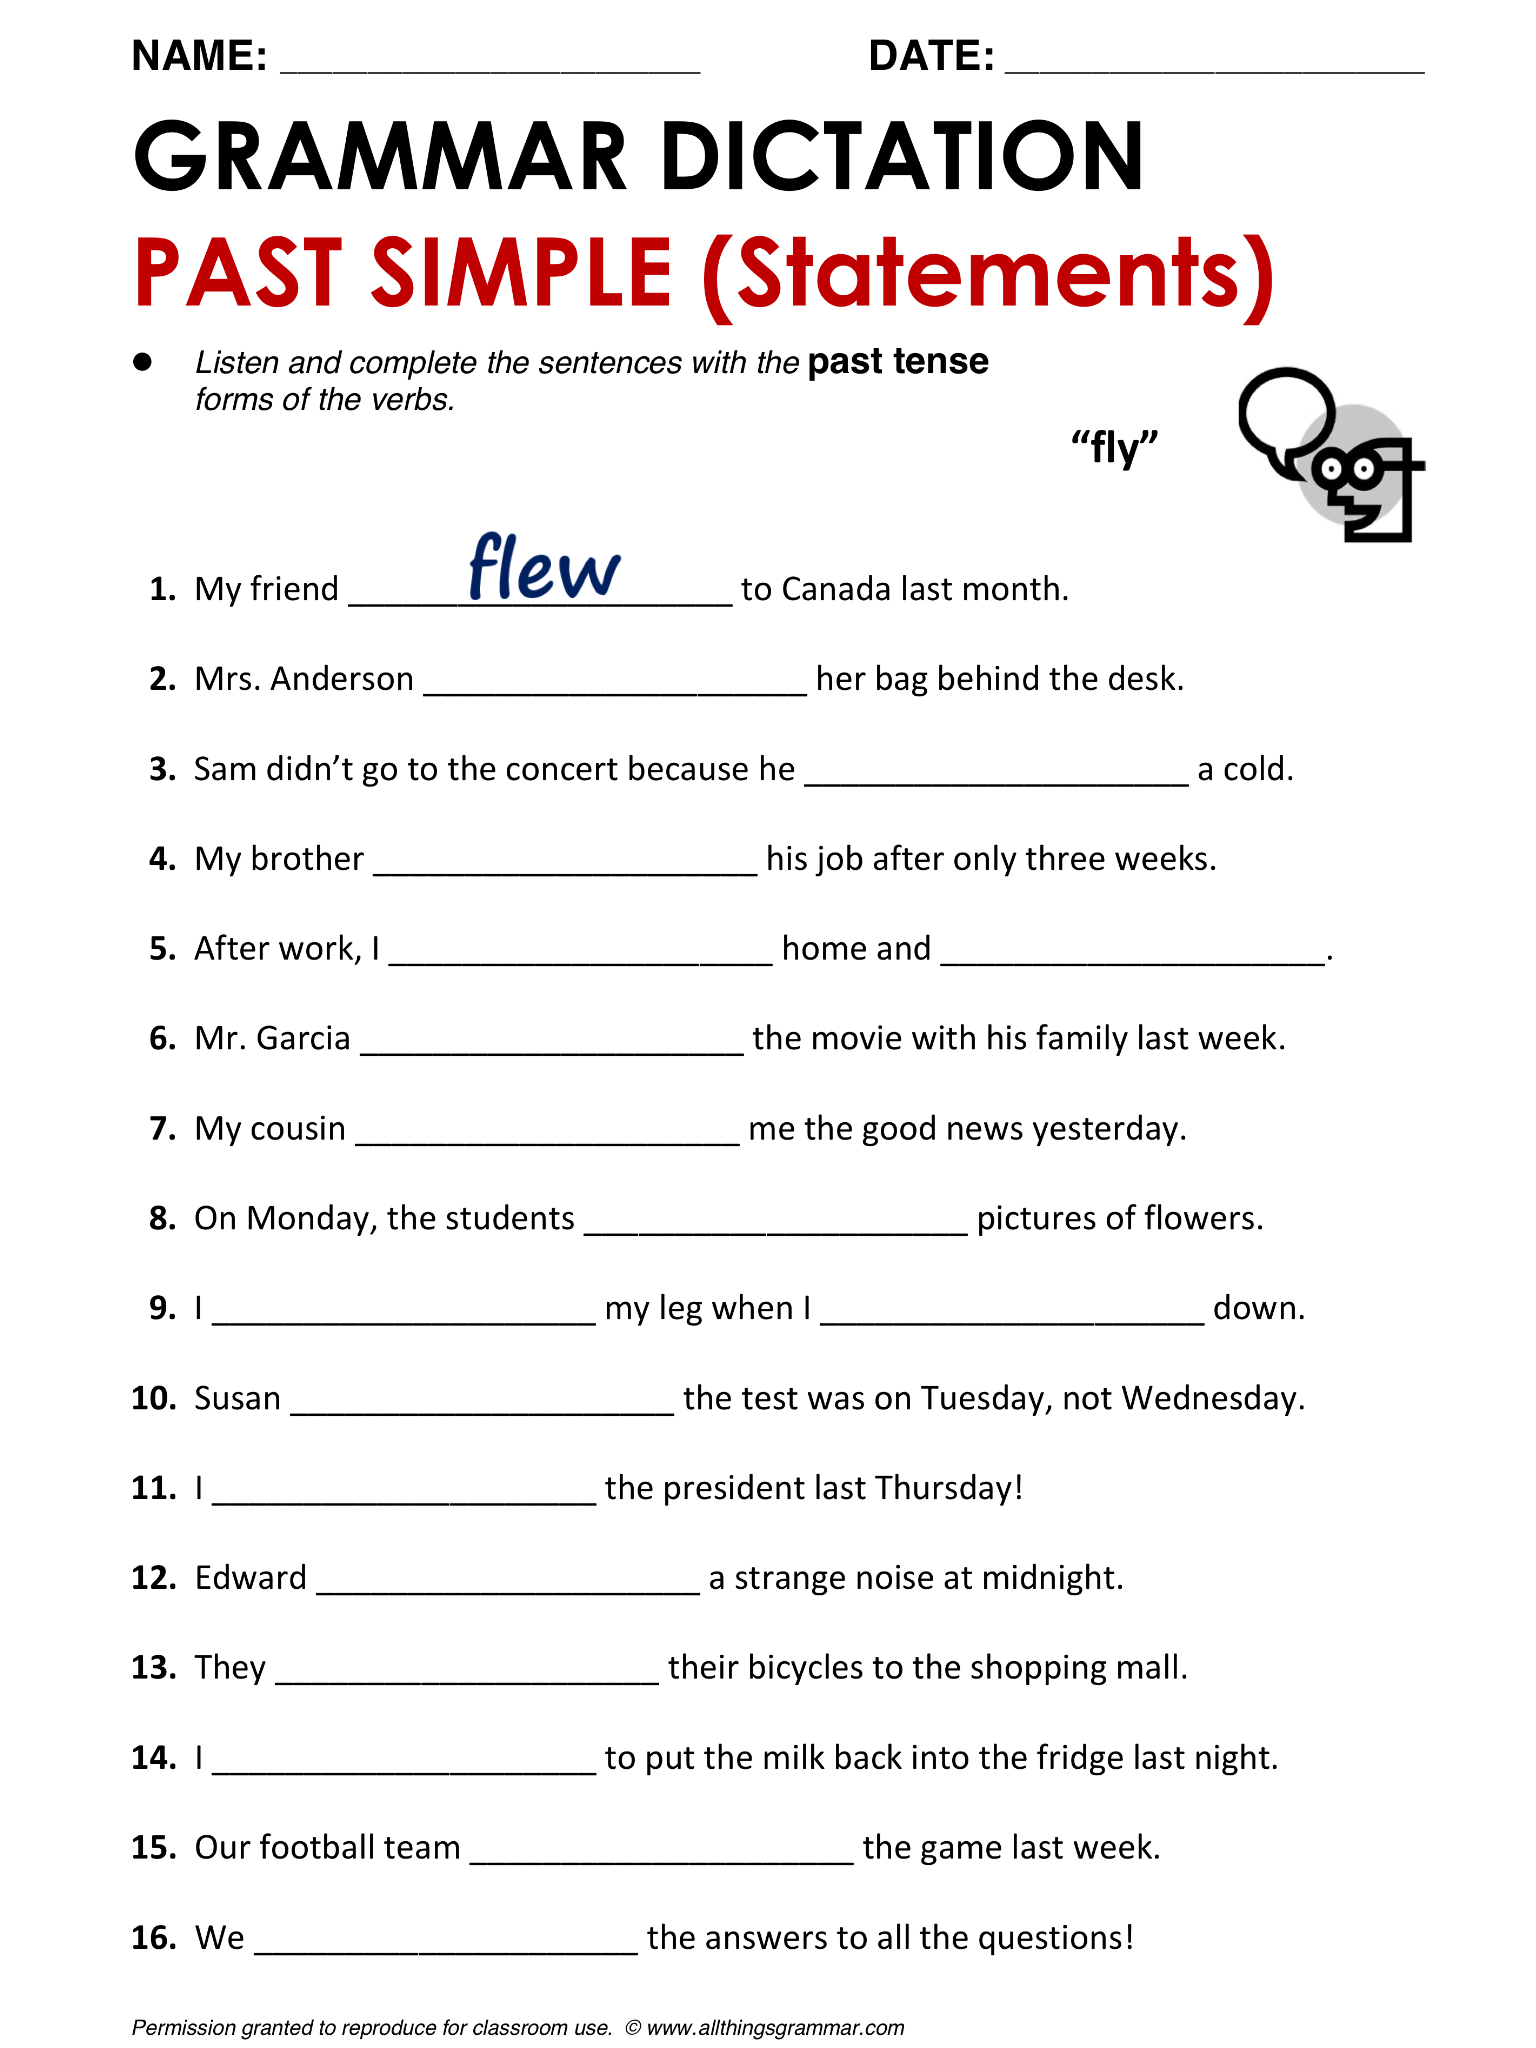 English Grammar Past Simple